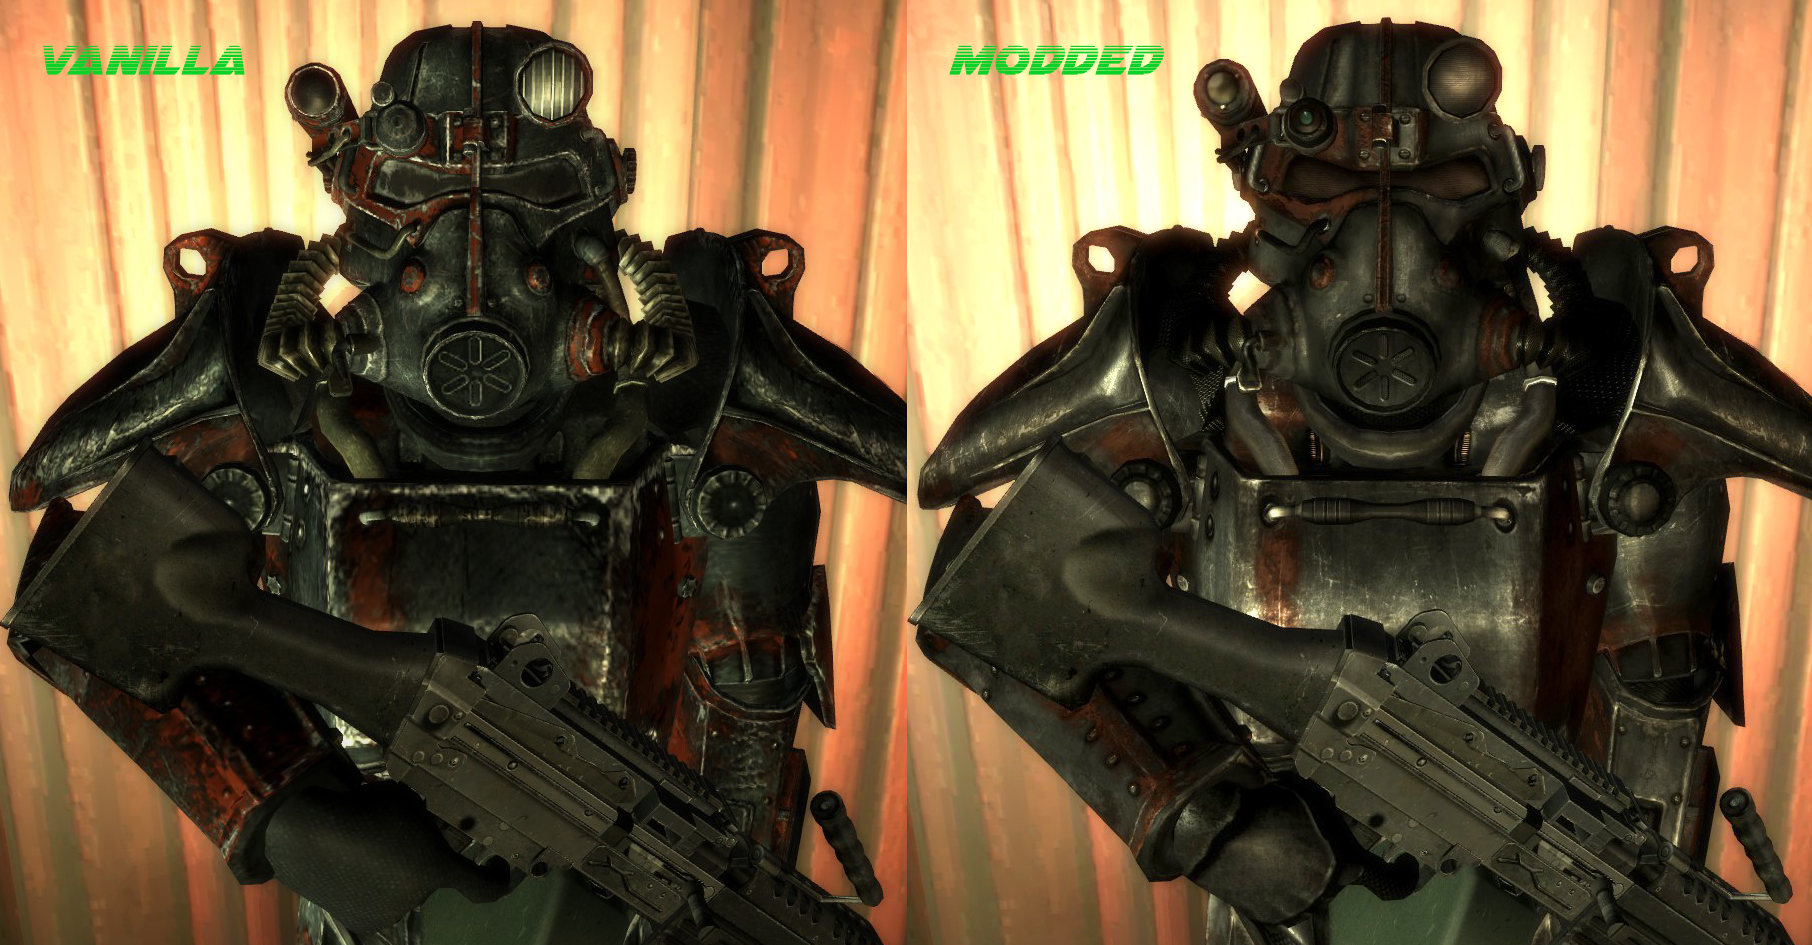 WARNING If You Install This Must Also The BOS Brotherhood Of Steel T 45d Power Armor Retexture As Listed Above Otherwise Unmodded